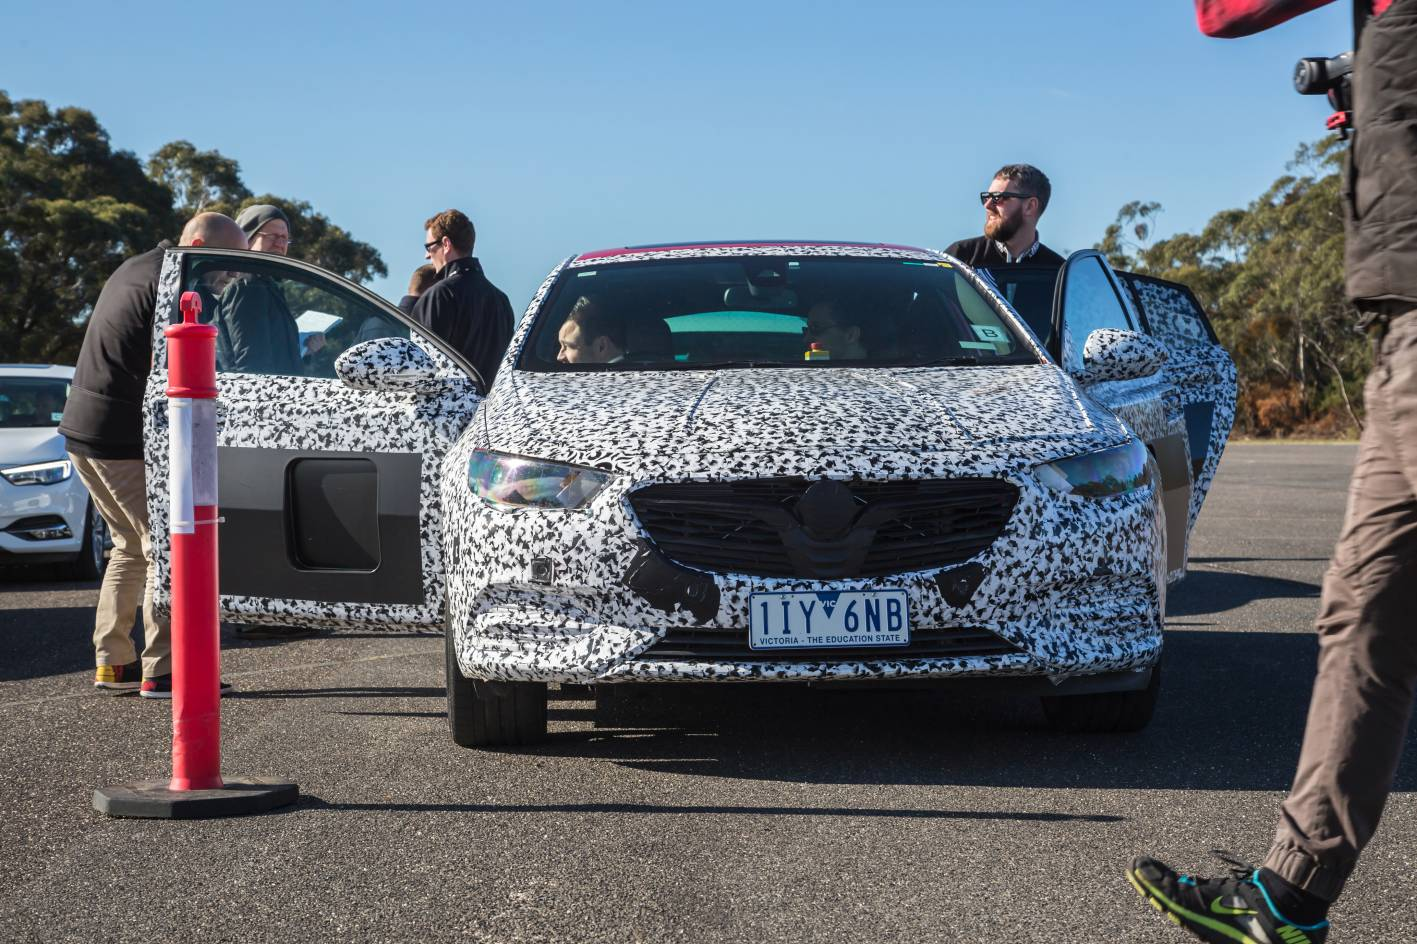 This is the new Holden Commodore - the only problem with which is: Nobody really gives a toss